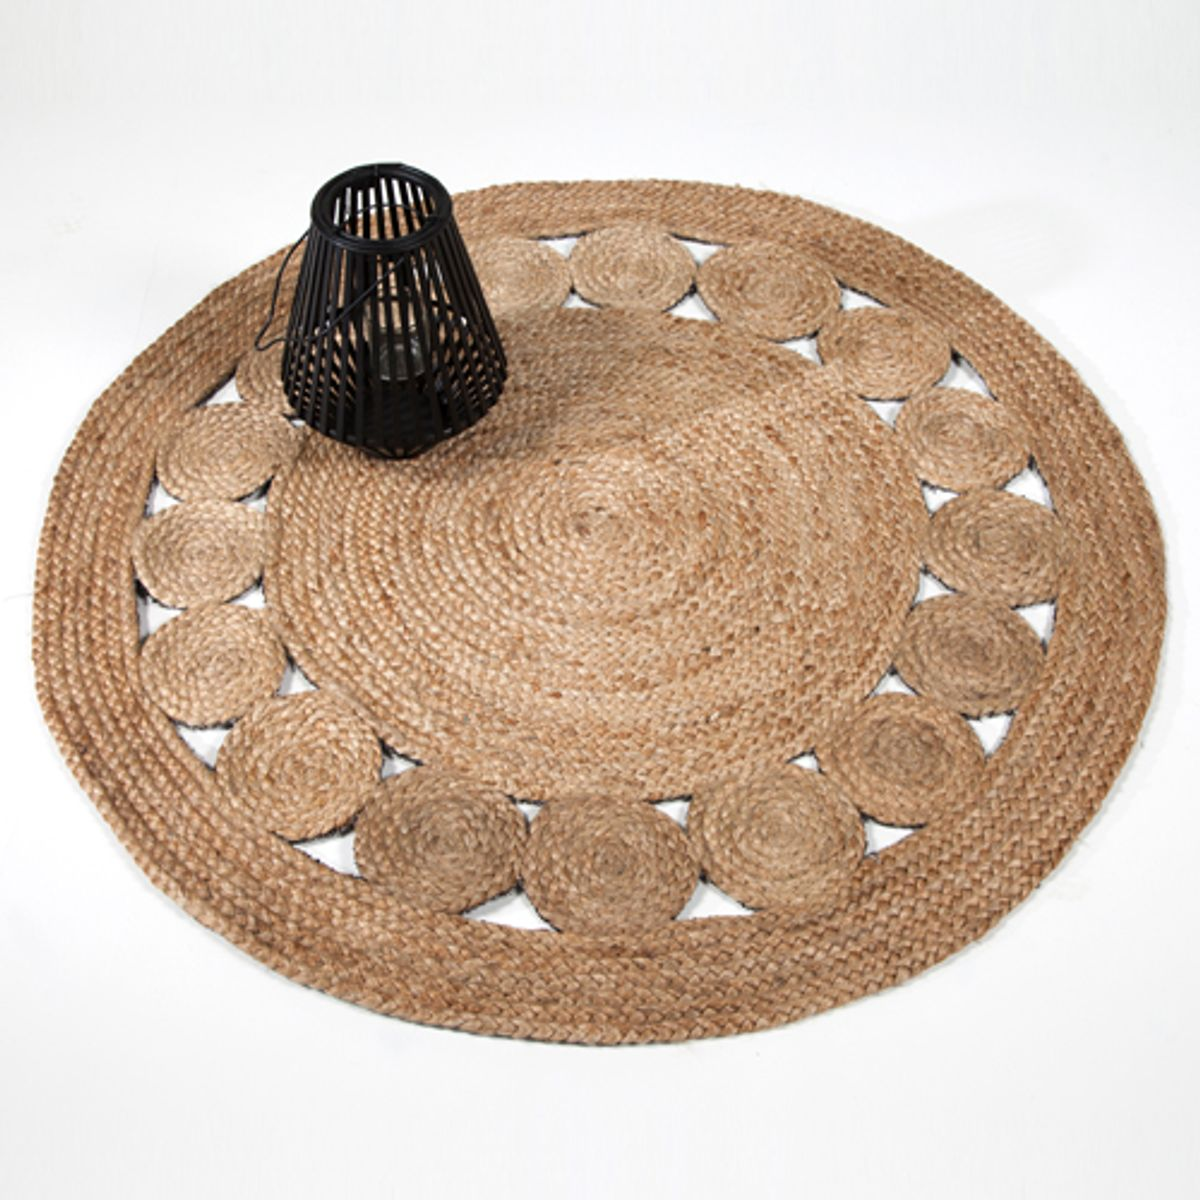 tapis rond esprit vintage en jute naturel tiss main 120 cm decoclico. Black Bedroom Furniture Sets. Home Design Ideas